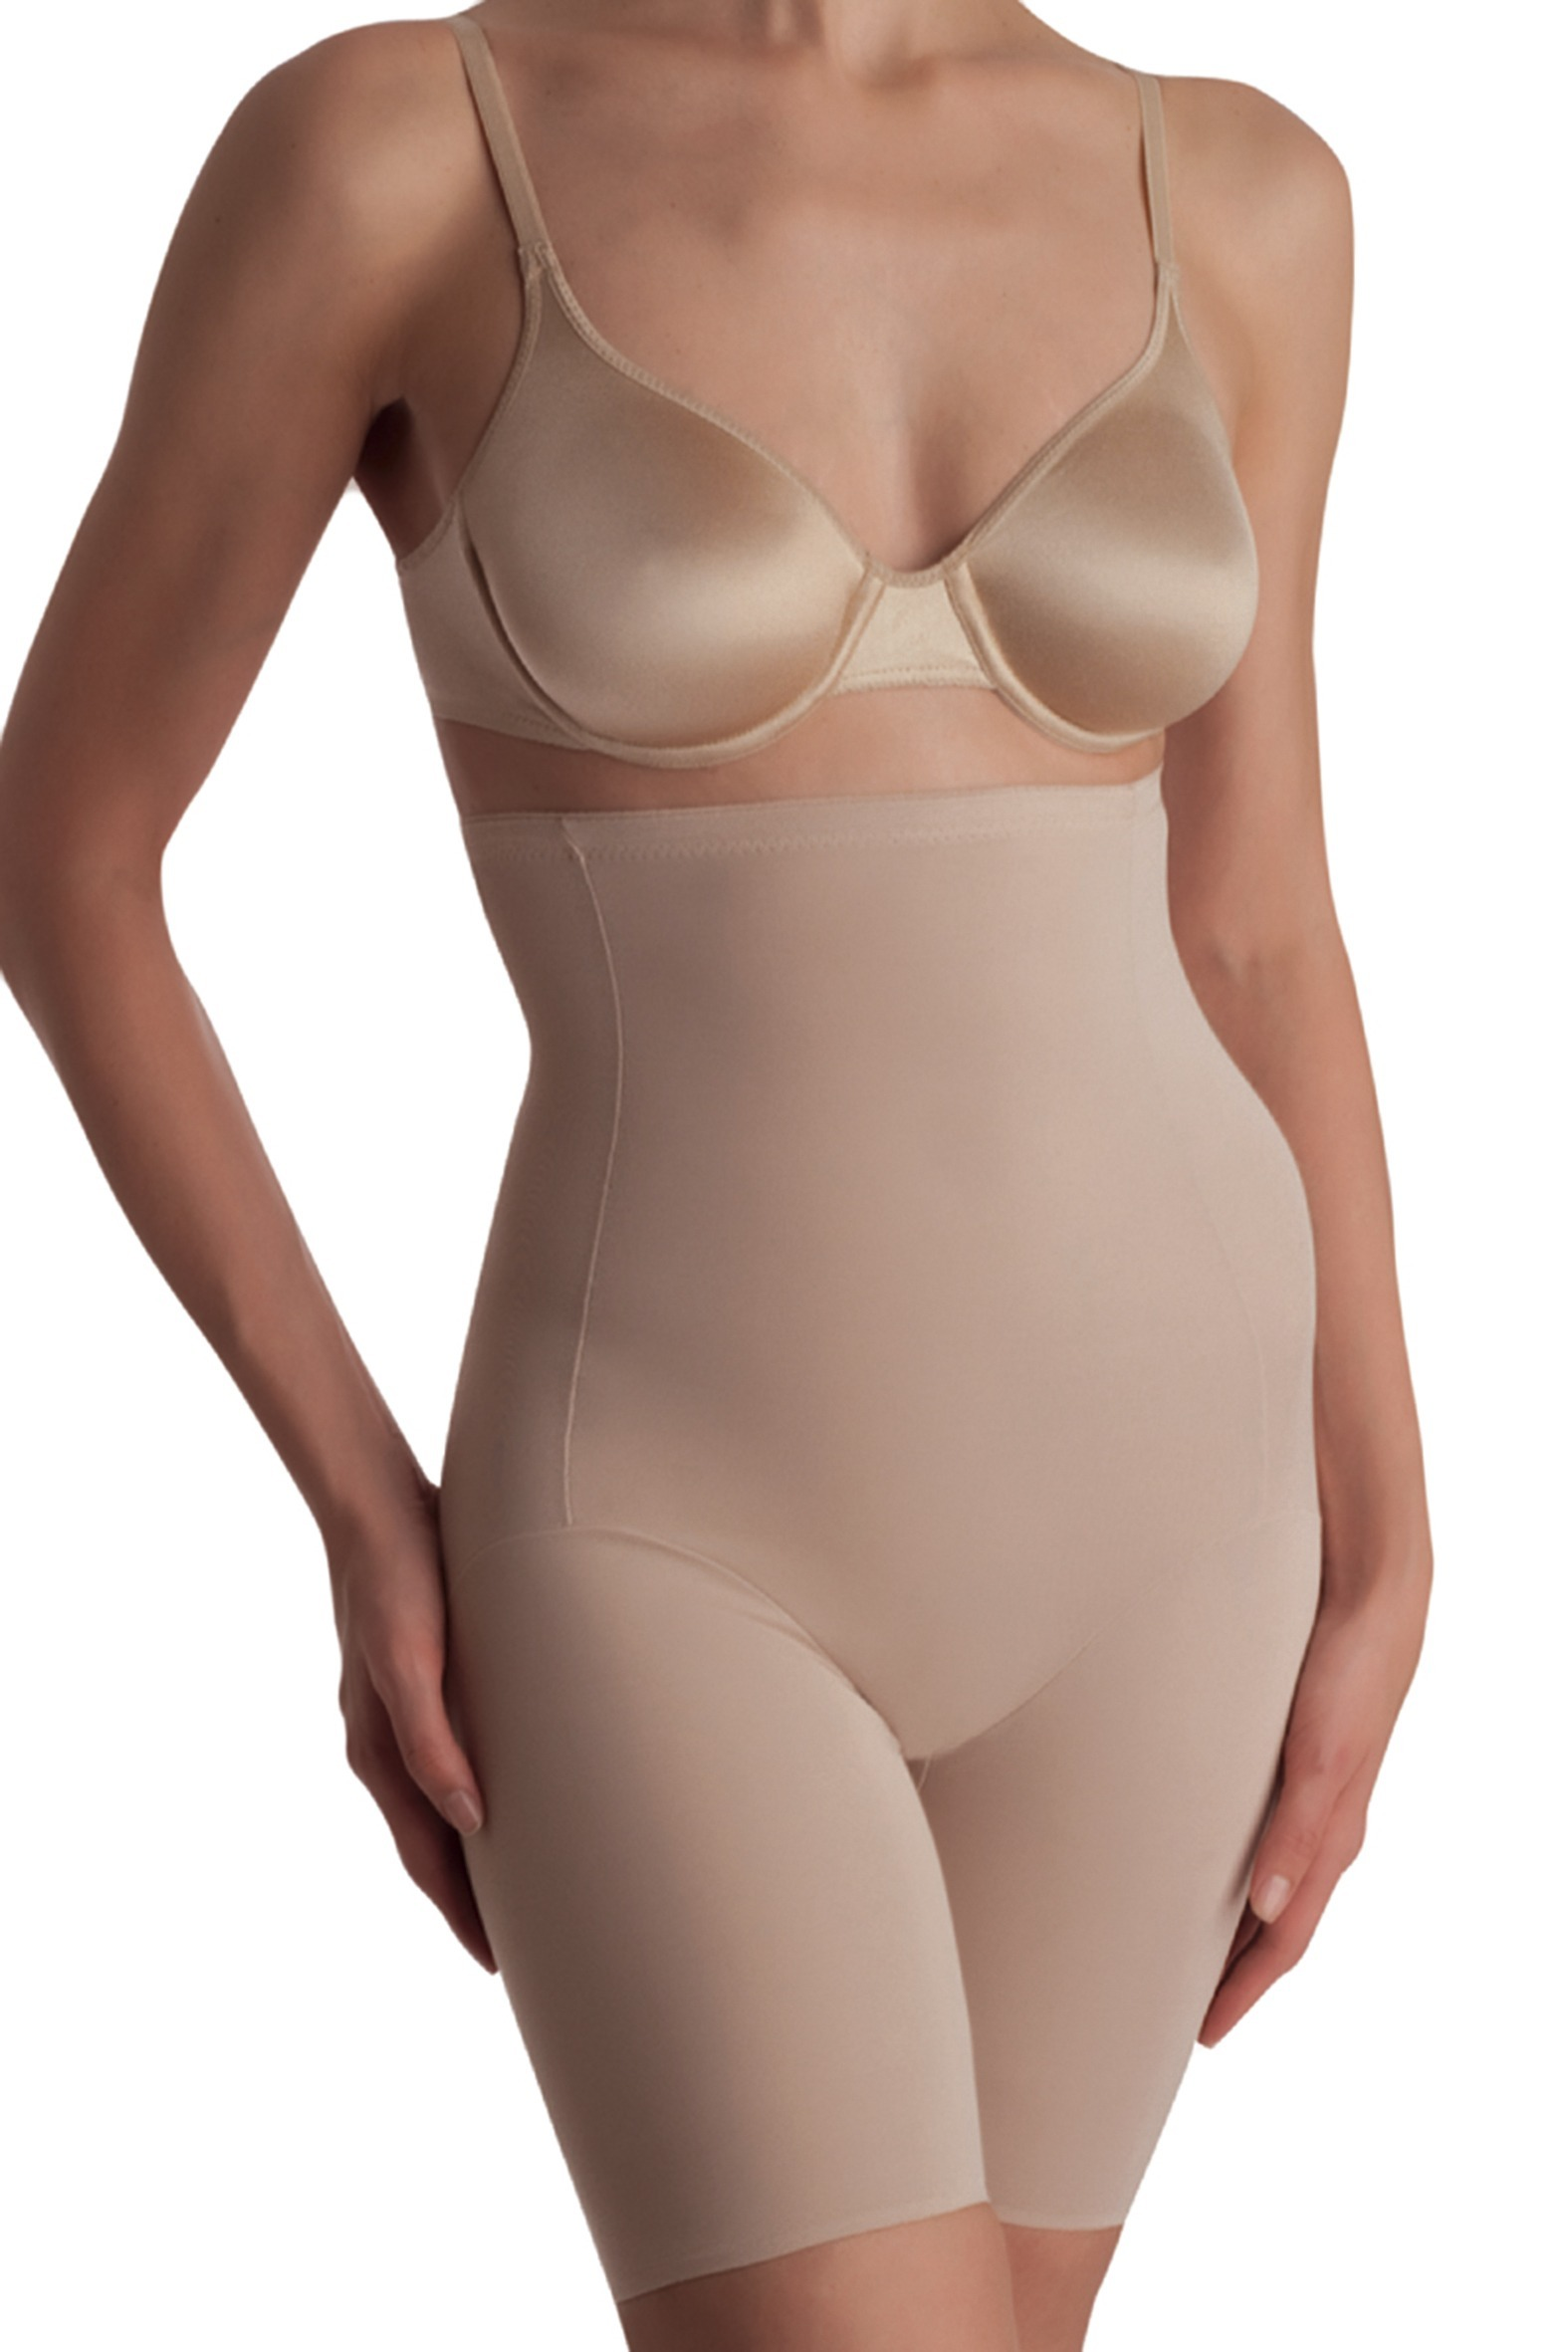 Naomi & Nicole Firm Control High-Waist Thigh Slimmer 779